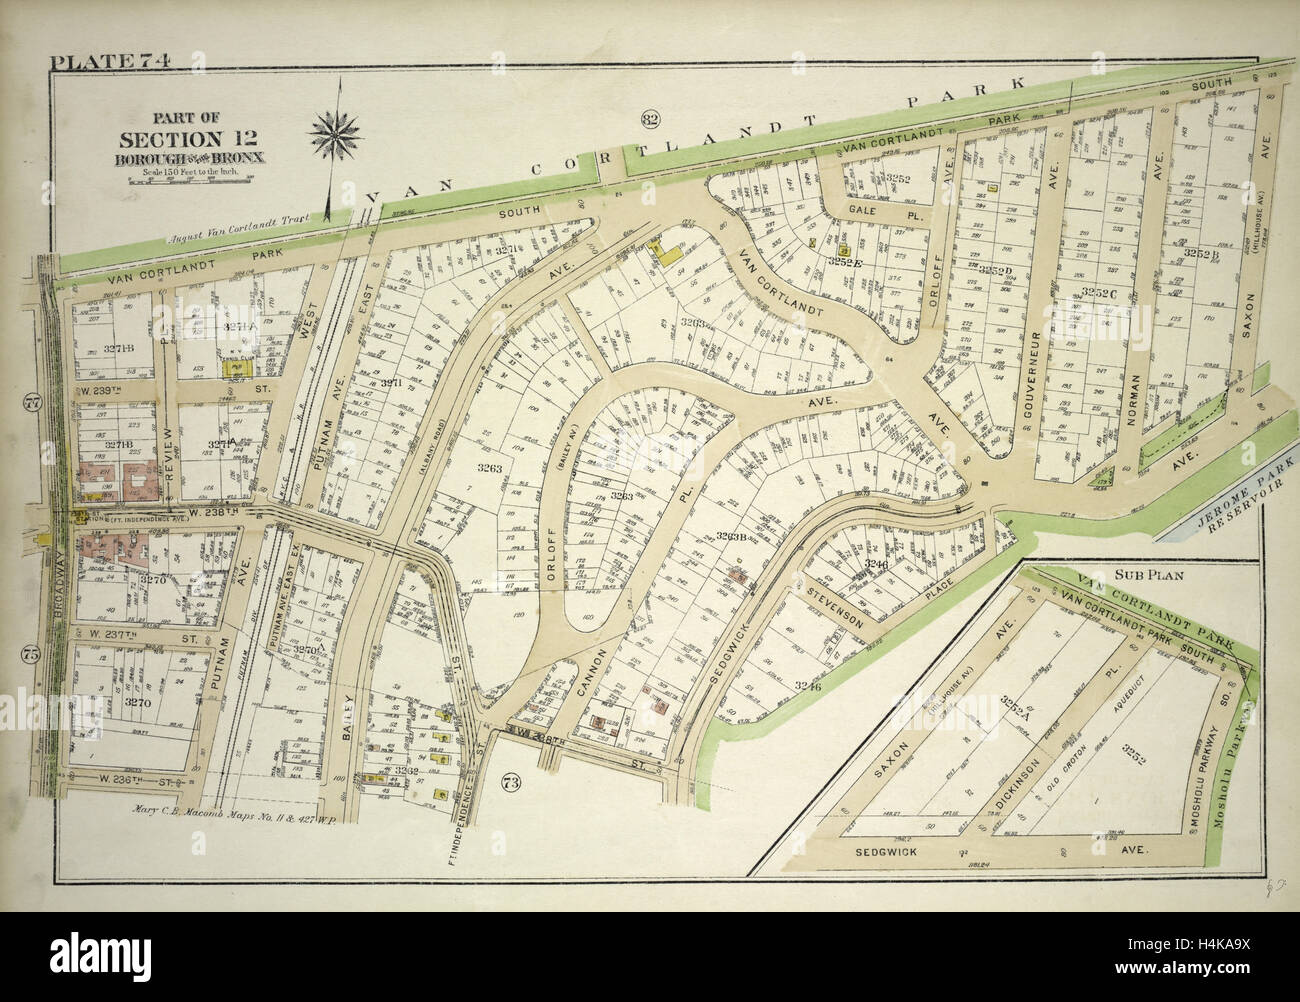 Plate 74, Part of Section 12, Borough of the Bronx. Bounded by Van  Cortlandt Park South, Mosholu Parkway, Sedgwick - Stock Image